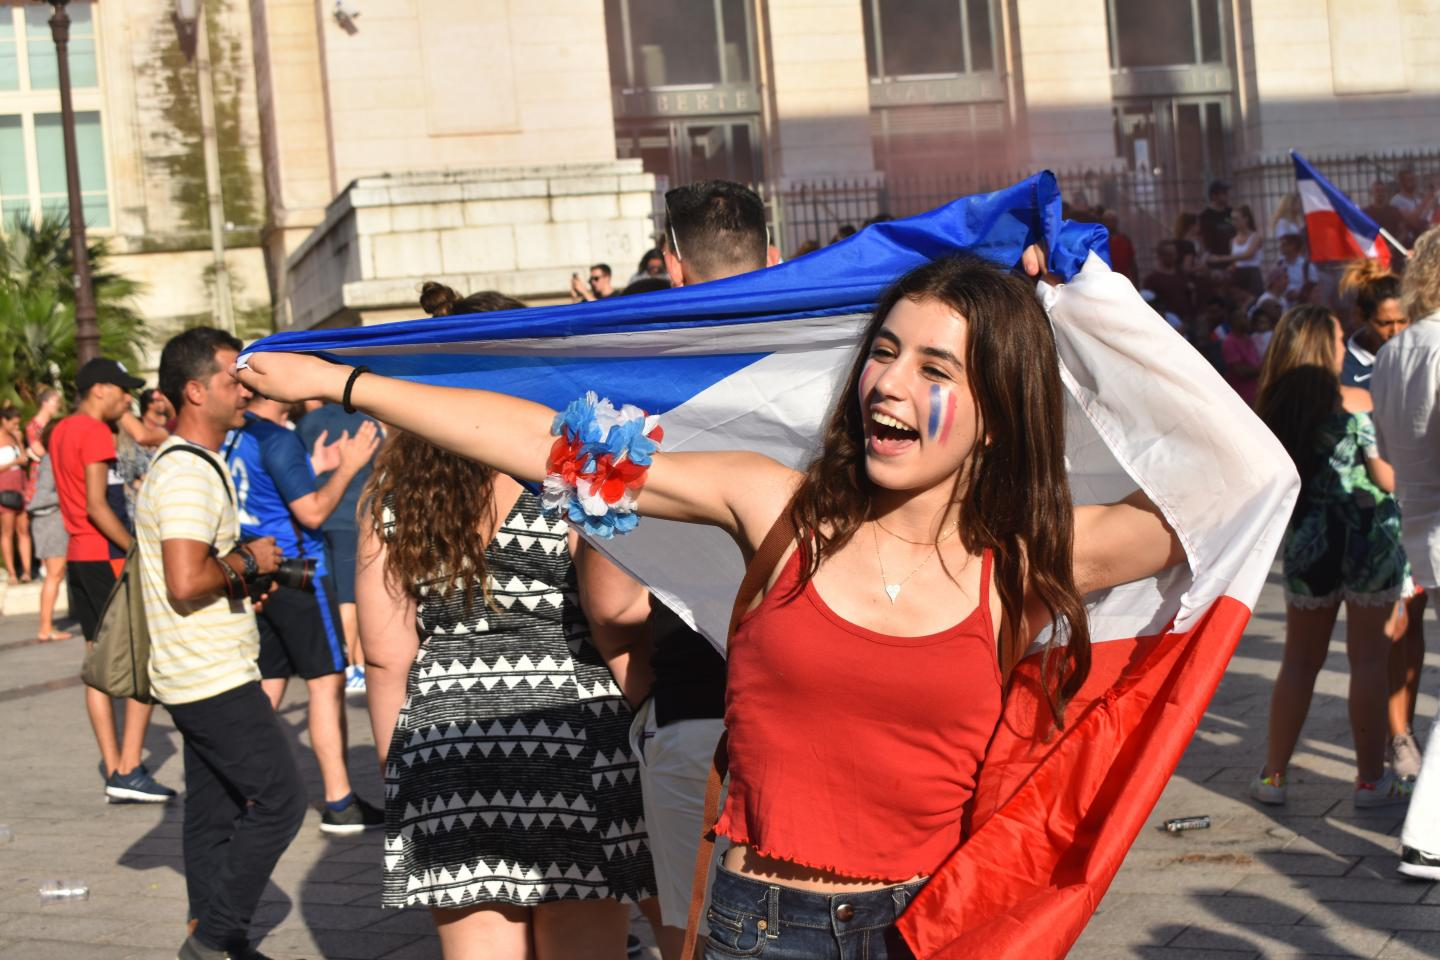 Teenage traveler celebrates Bastille Day in France during summer youth travel program